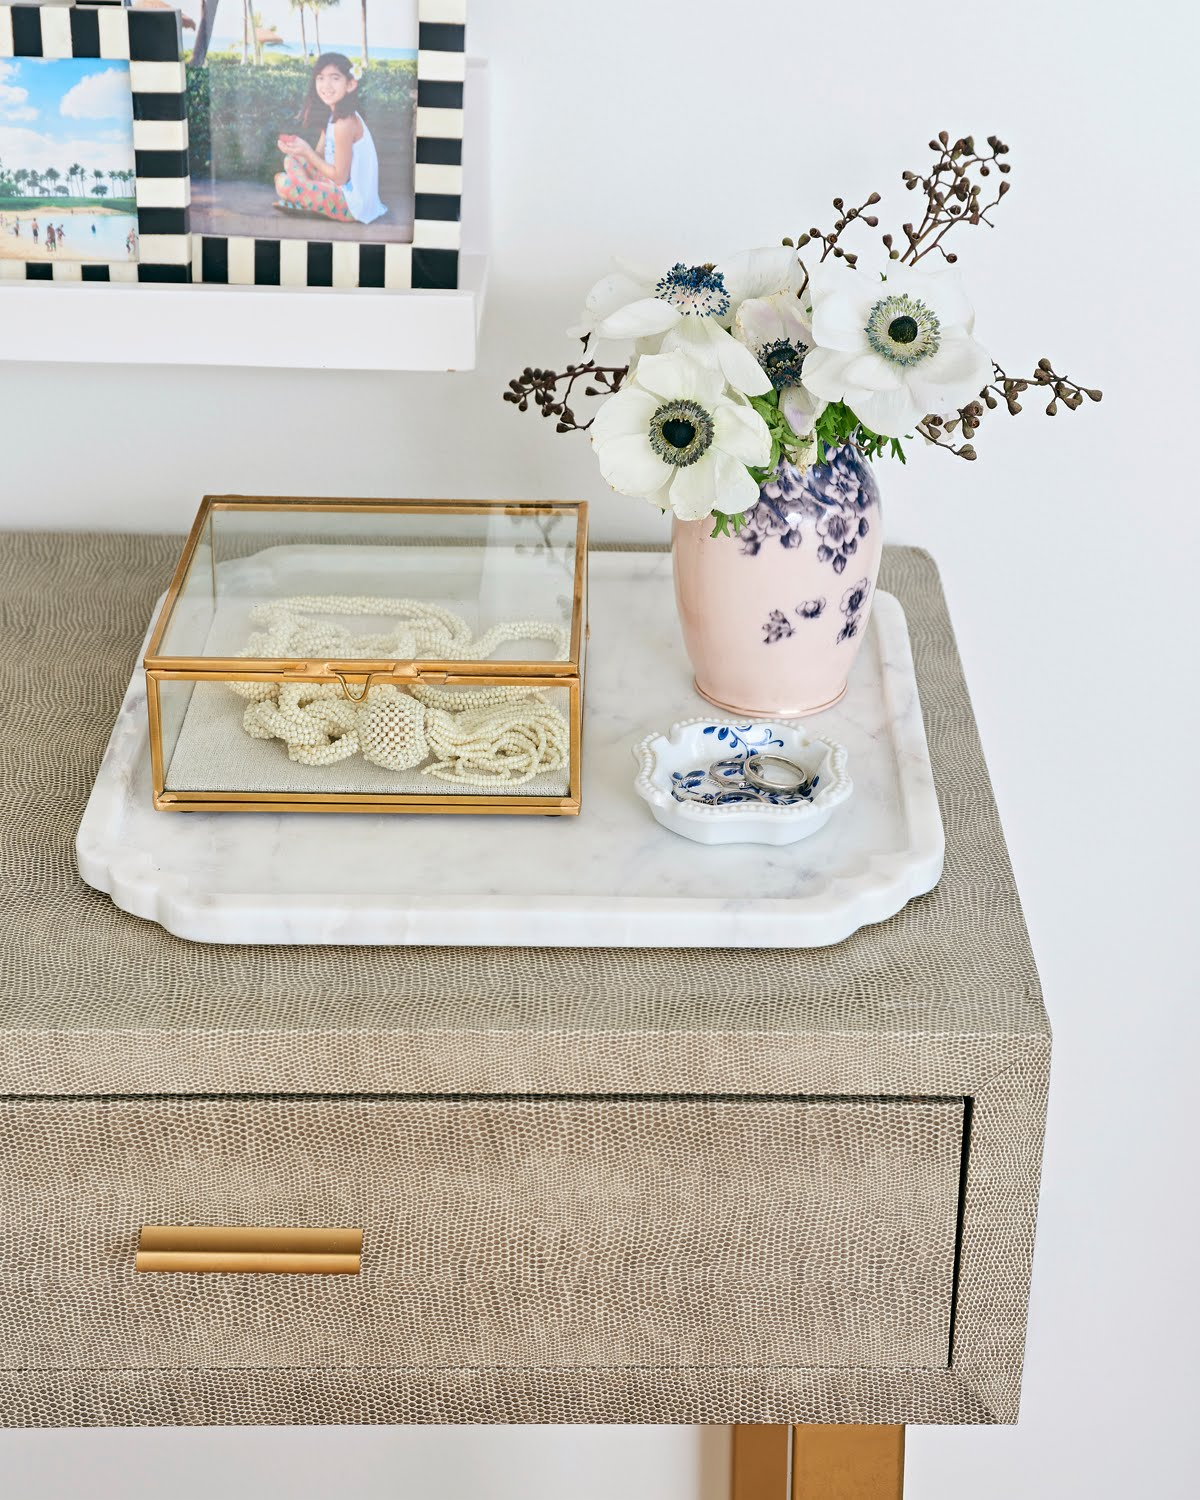 black and white frames with family photographs, a vase with anemones, gold glass box on marble tray